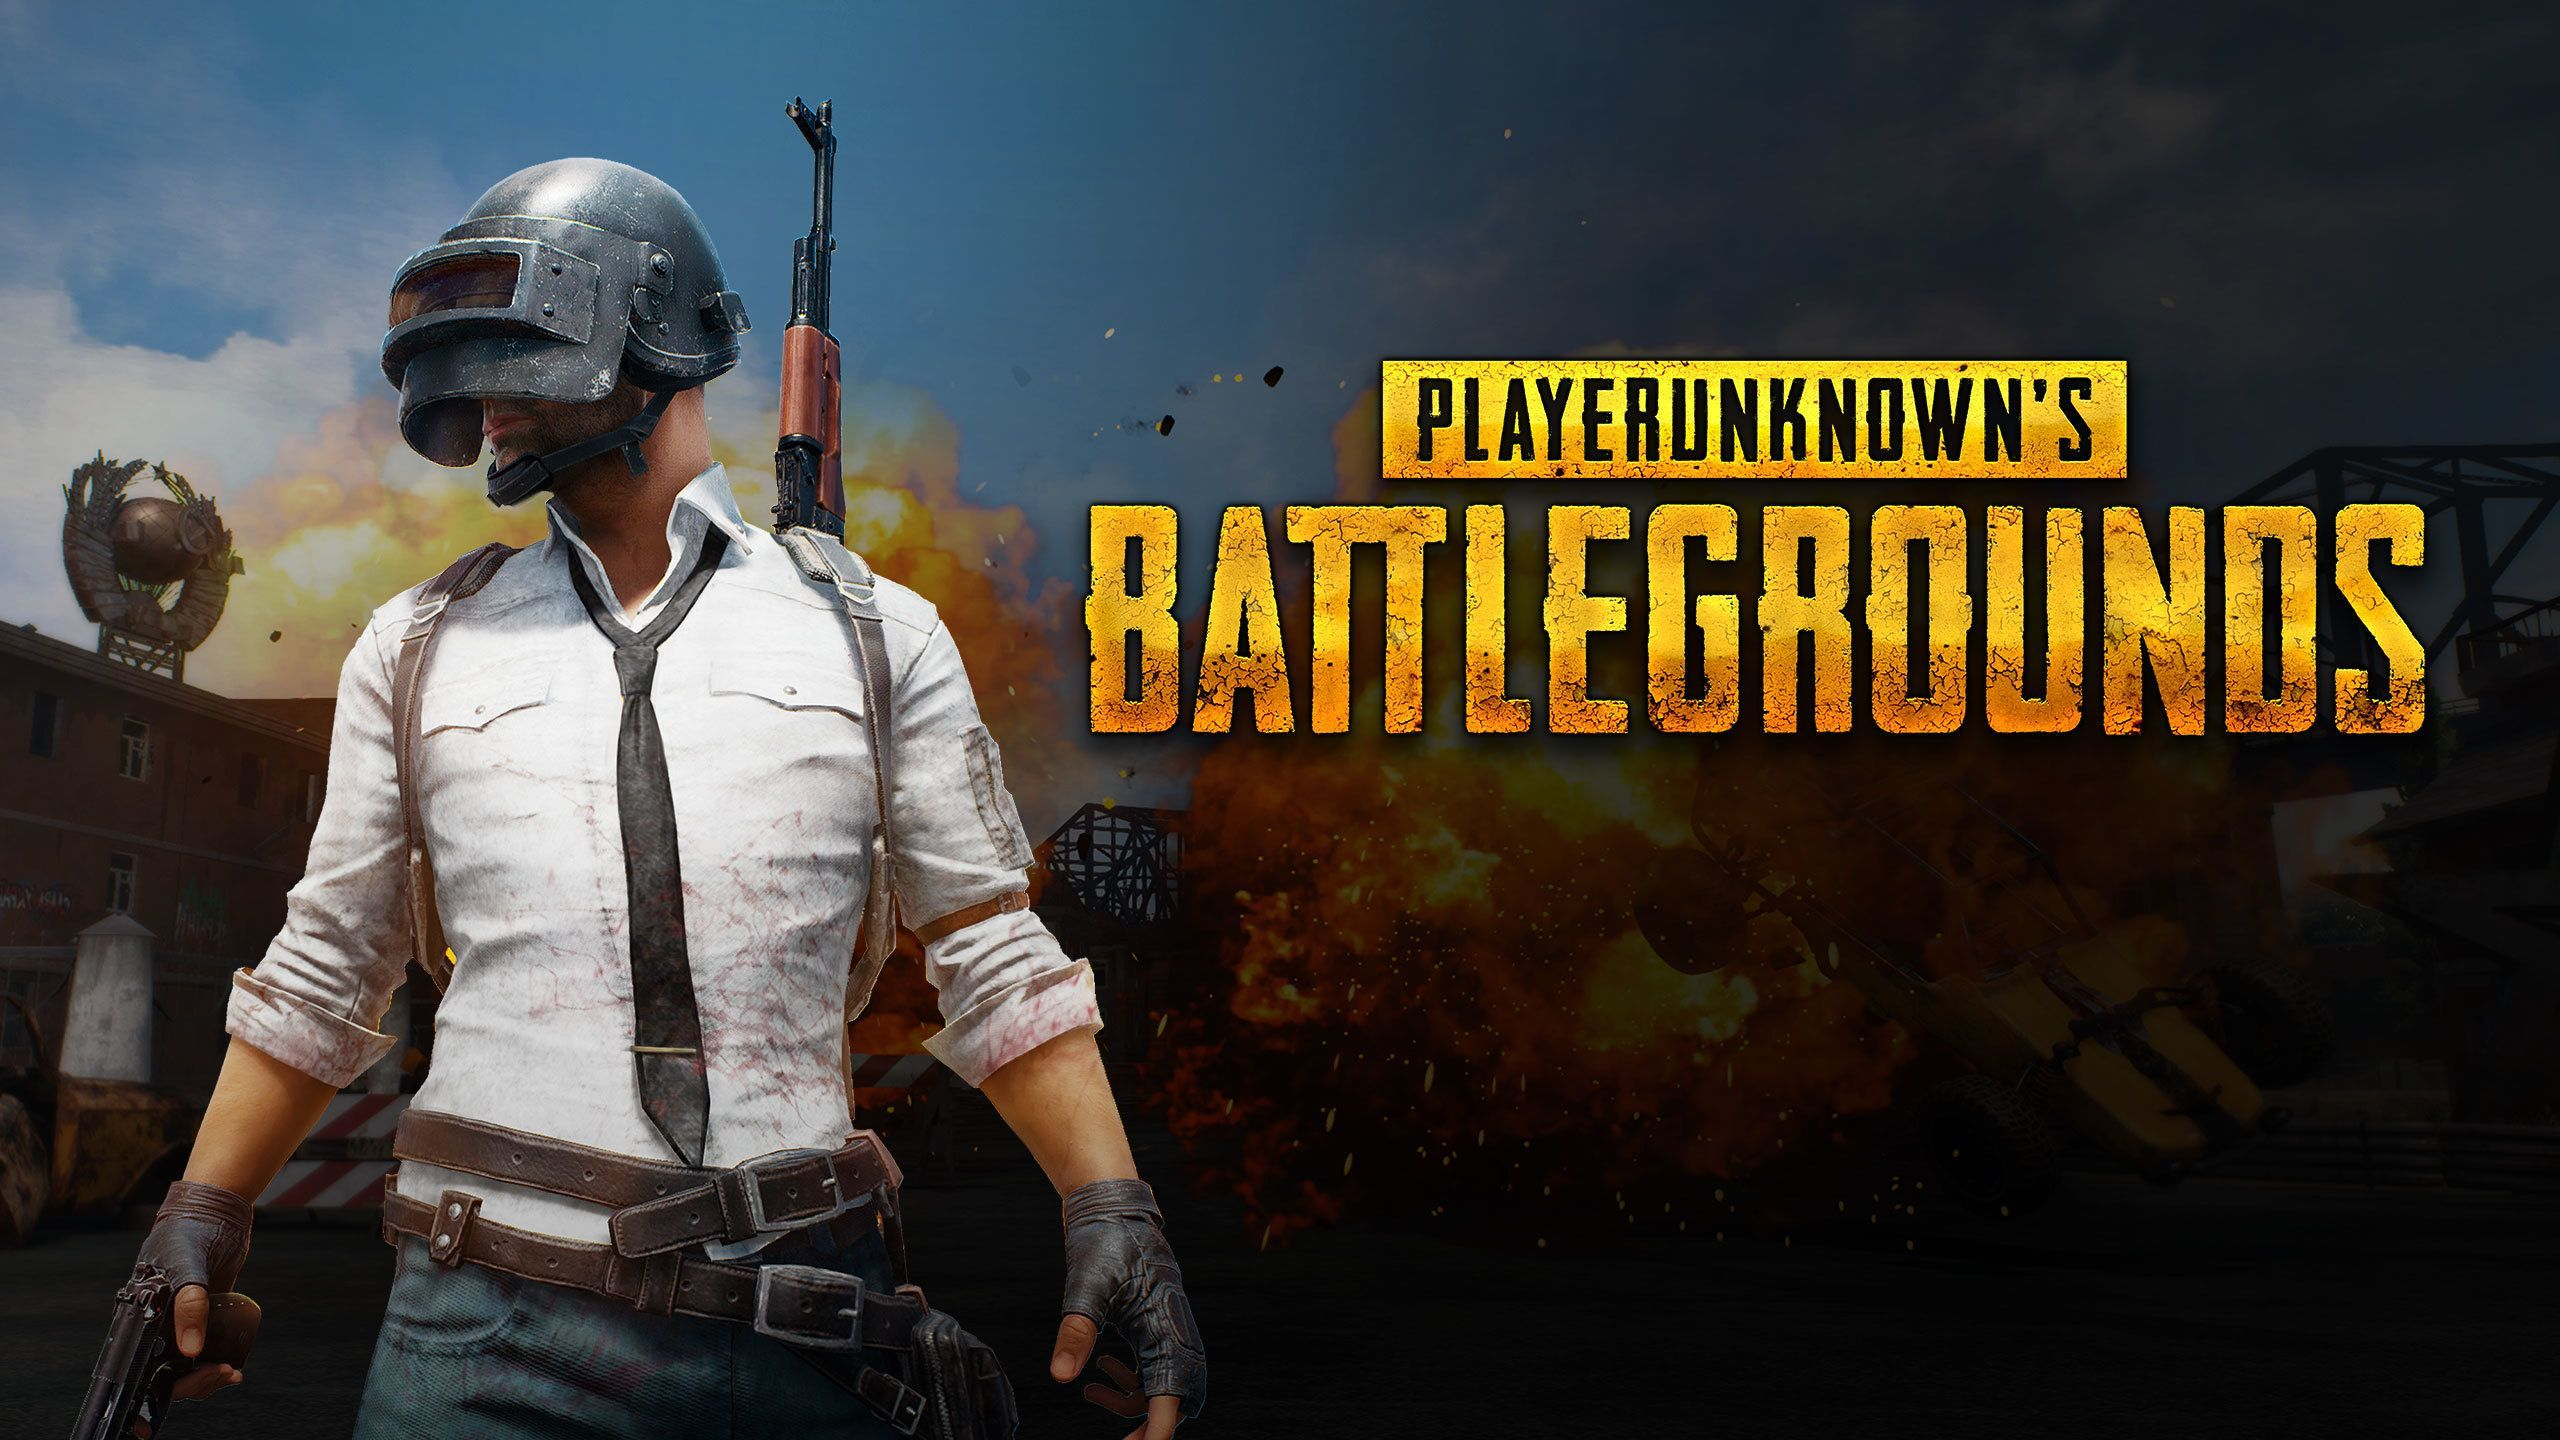 Player Unknown S Battlegrounds Pubg 4k Pubg Wallpaper Phone Pubg Wallpaper Iphone Pubg Wallpaper 1920x1080 Hd Pc Games Download Download Hacks Tool Hacks